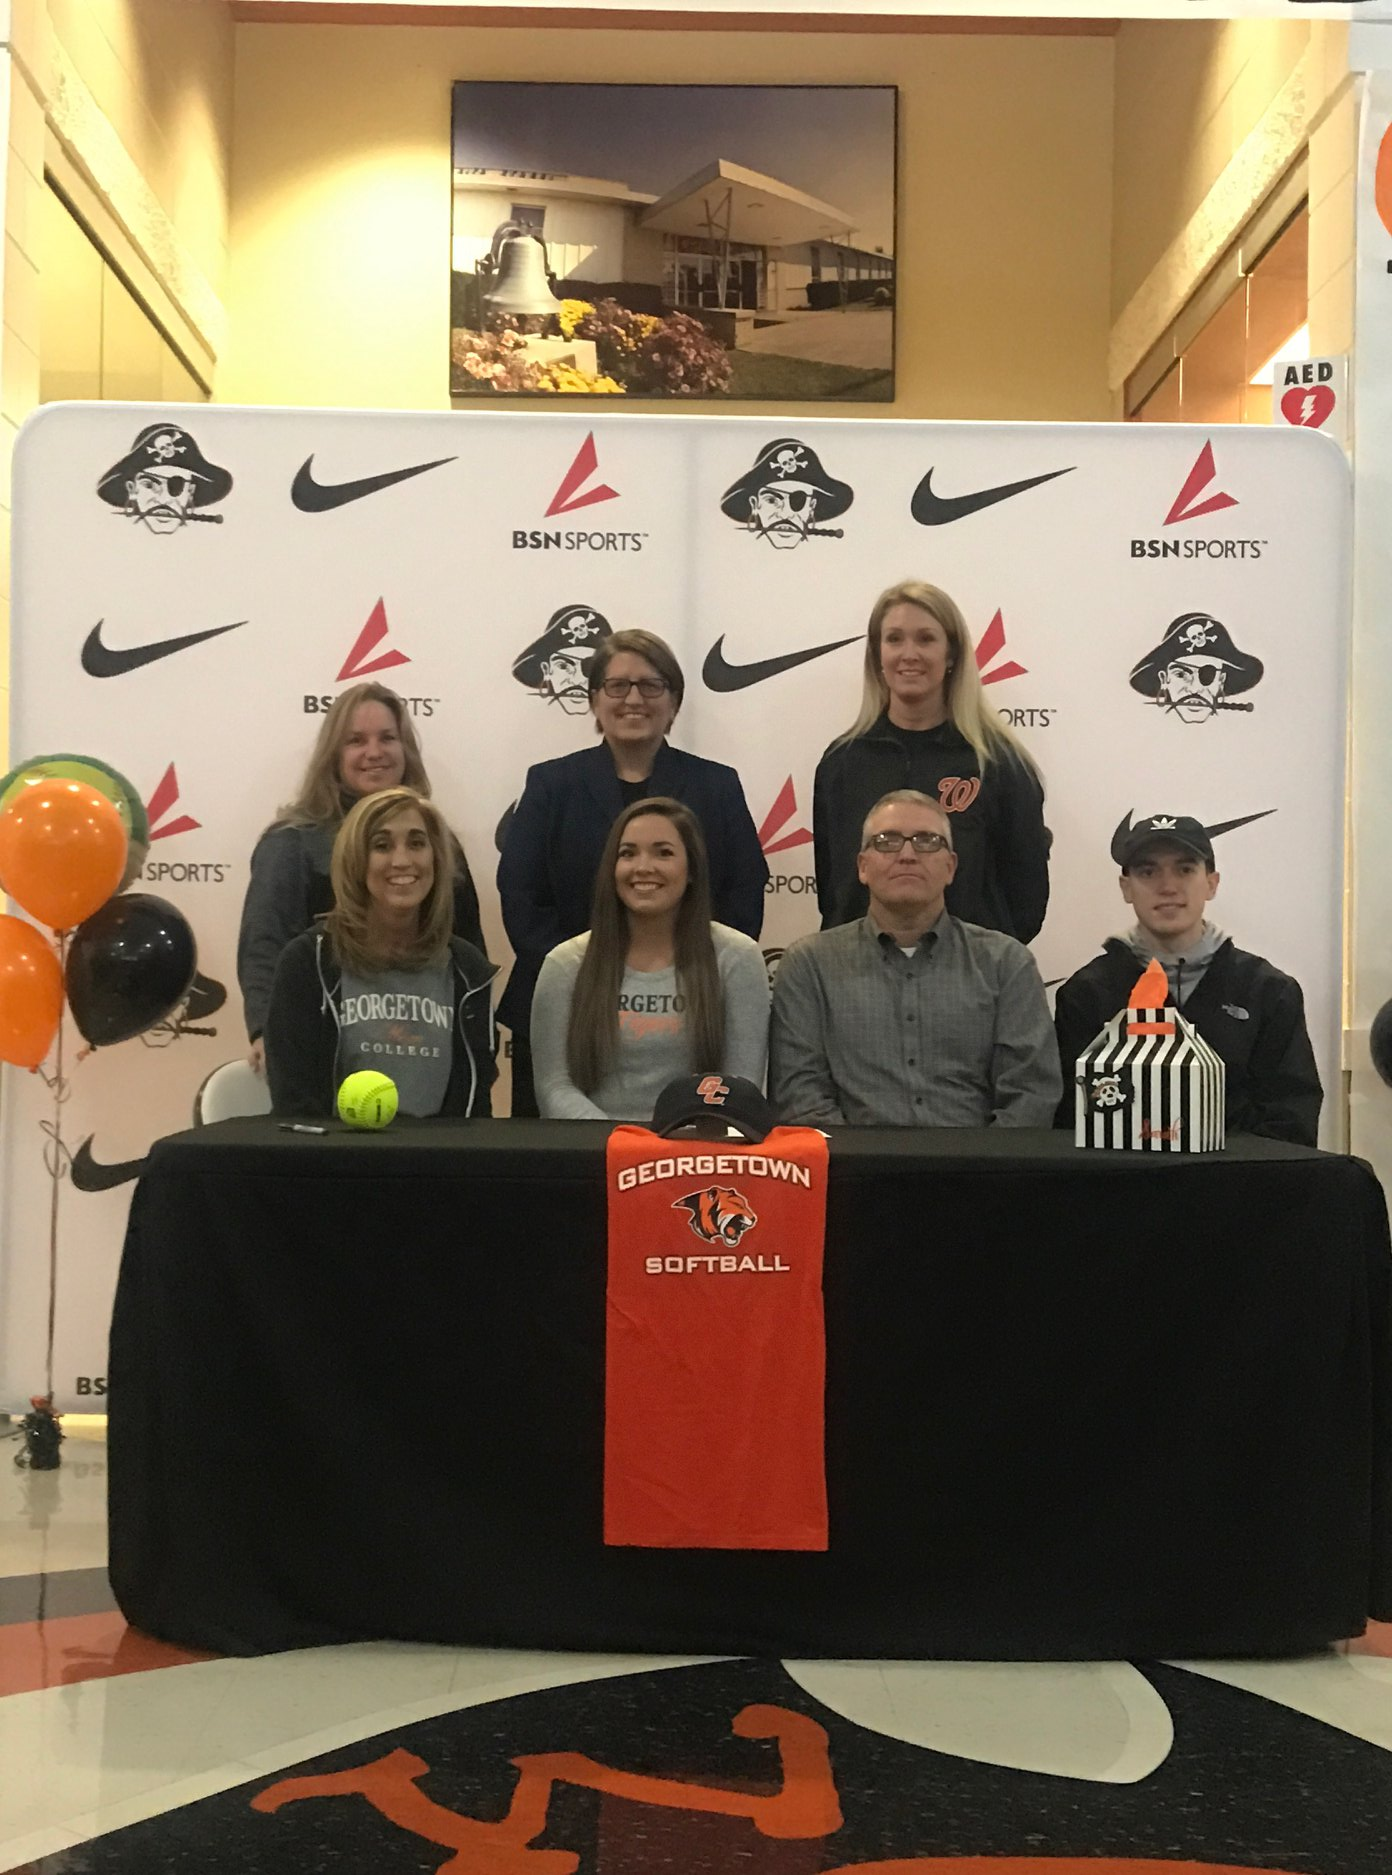 Sarah Claxon signing with Georgetown